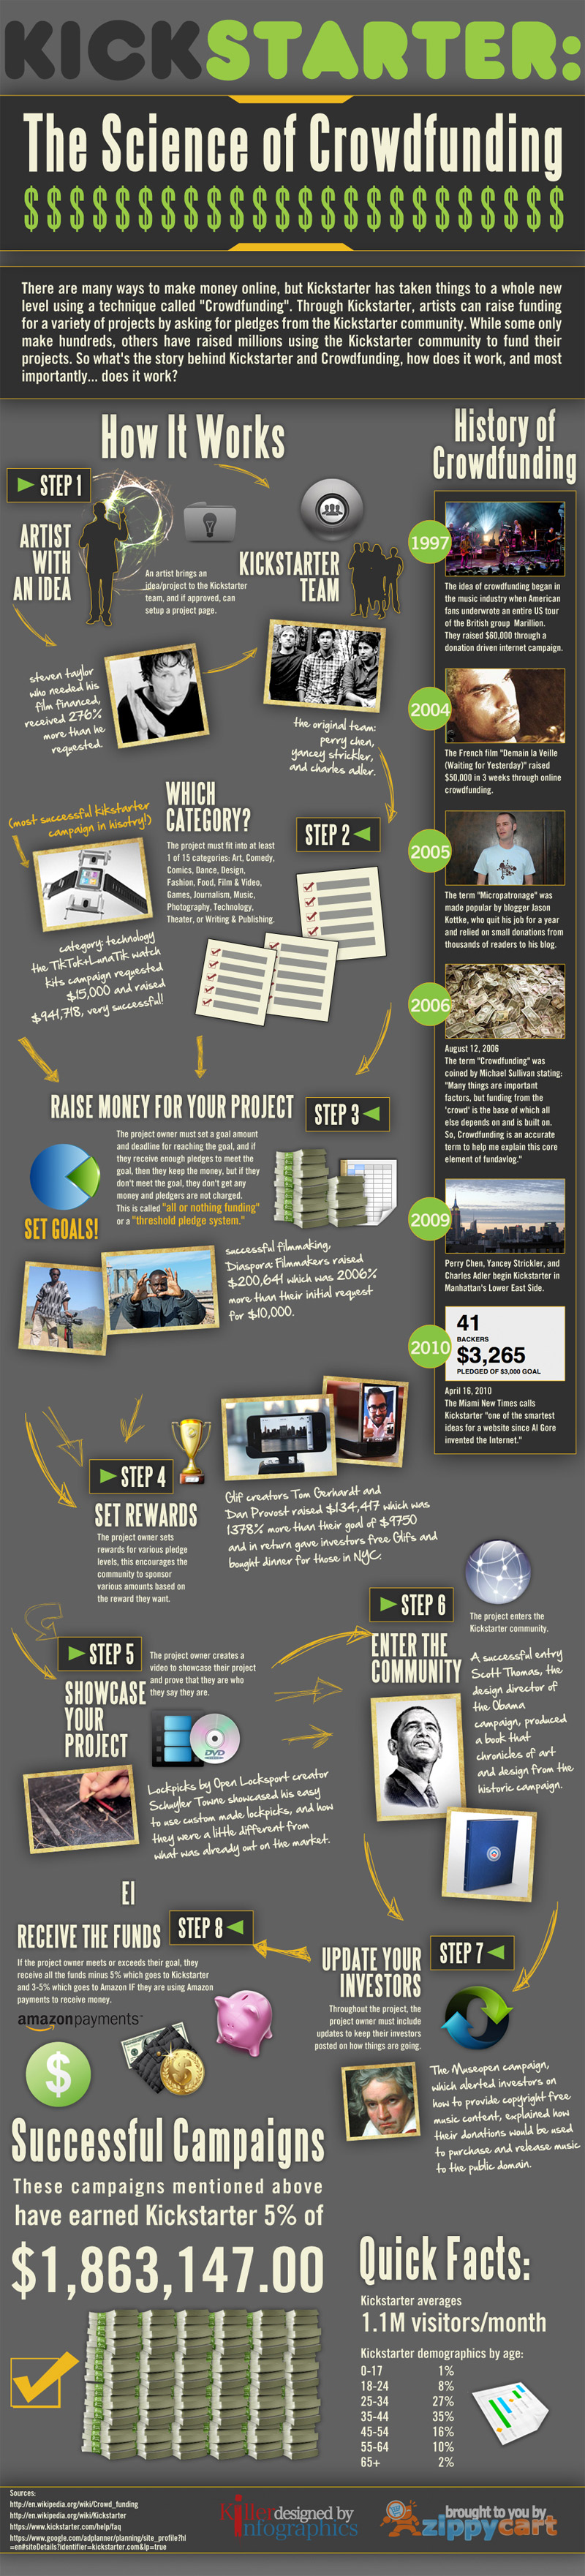 Kickstarter-Tips-and-Guide-Infographic